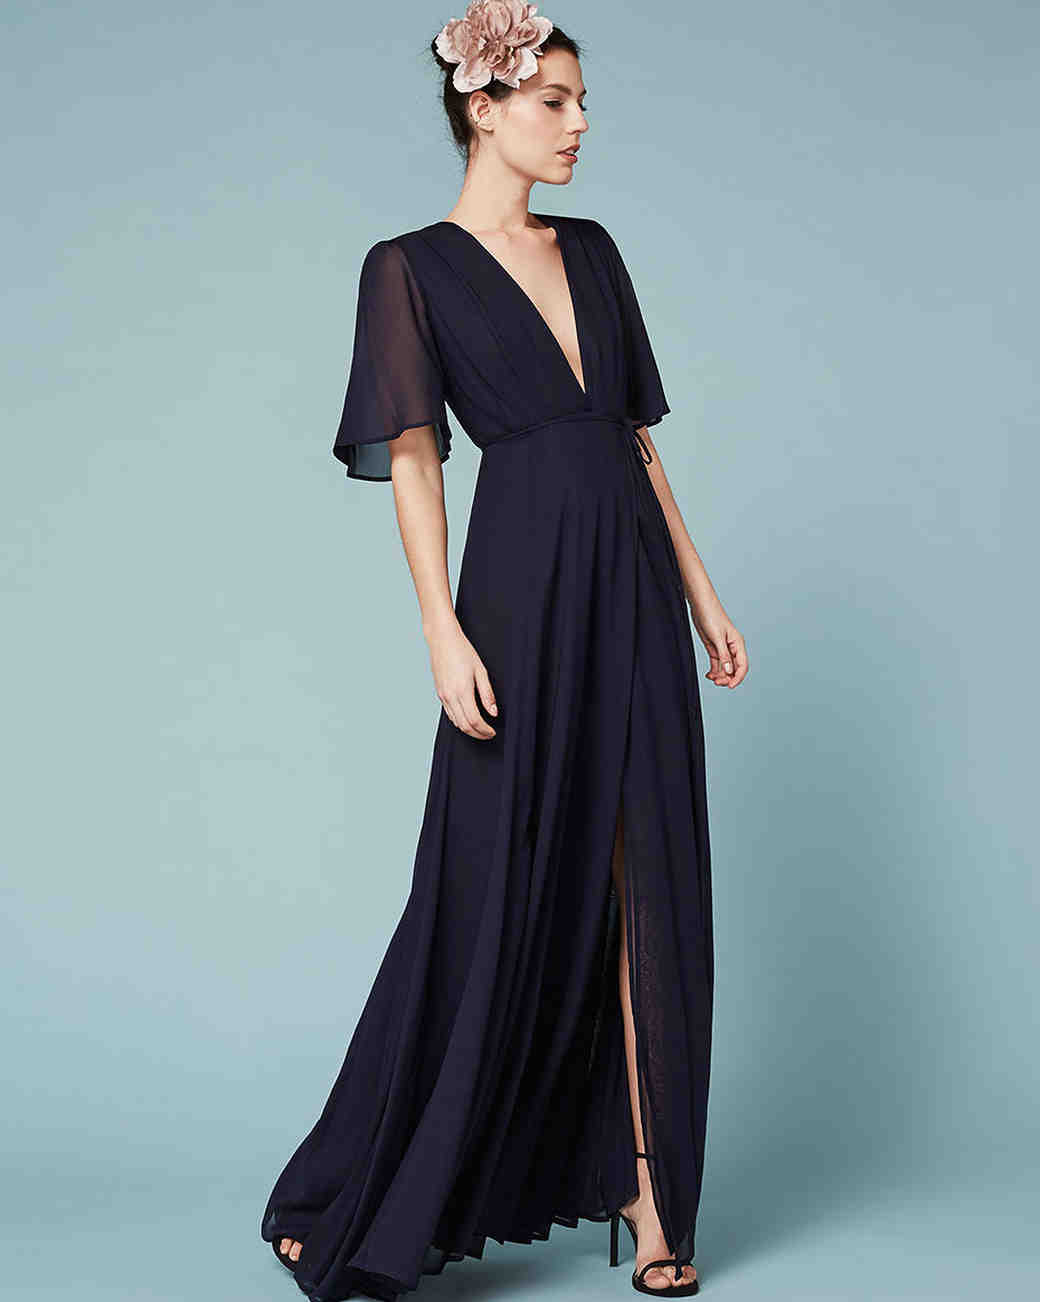 Winter Bridesmaid Dresses For A Cold Weather Wedding Martha Weddings